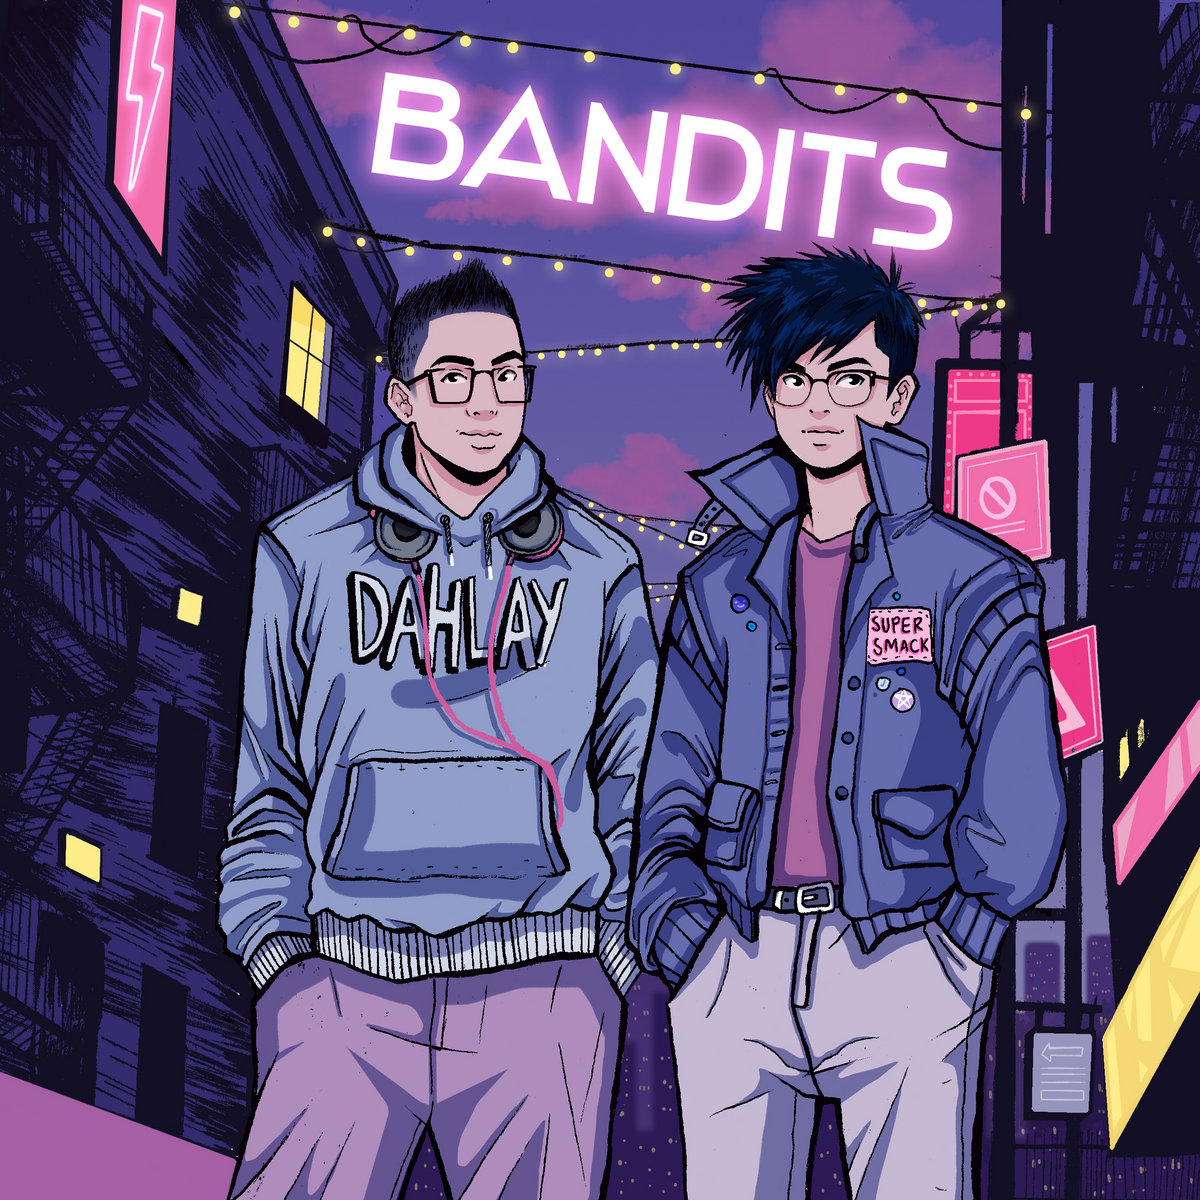 Bandits by Dahlay (feat. Super Smack)